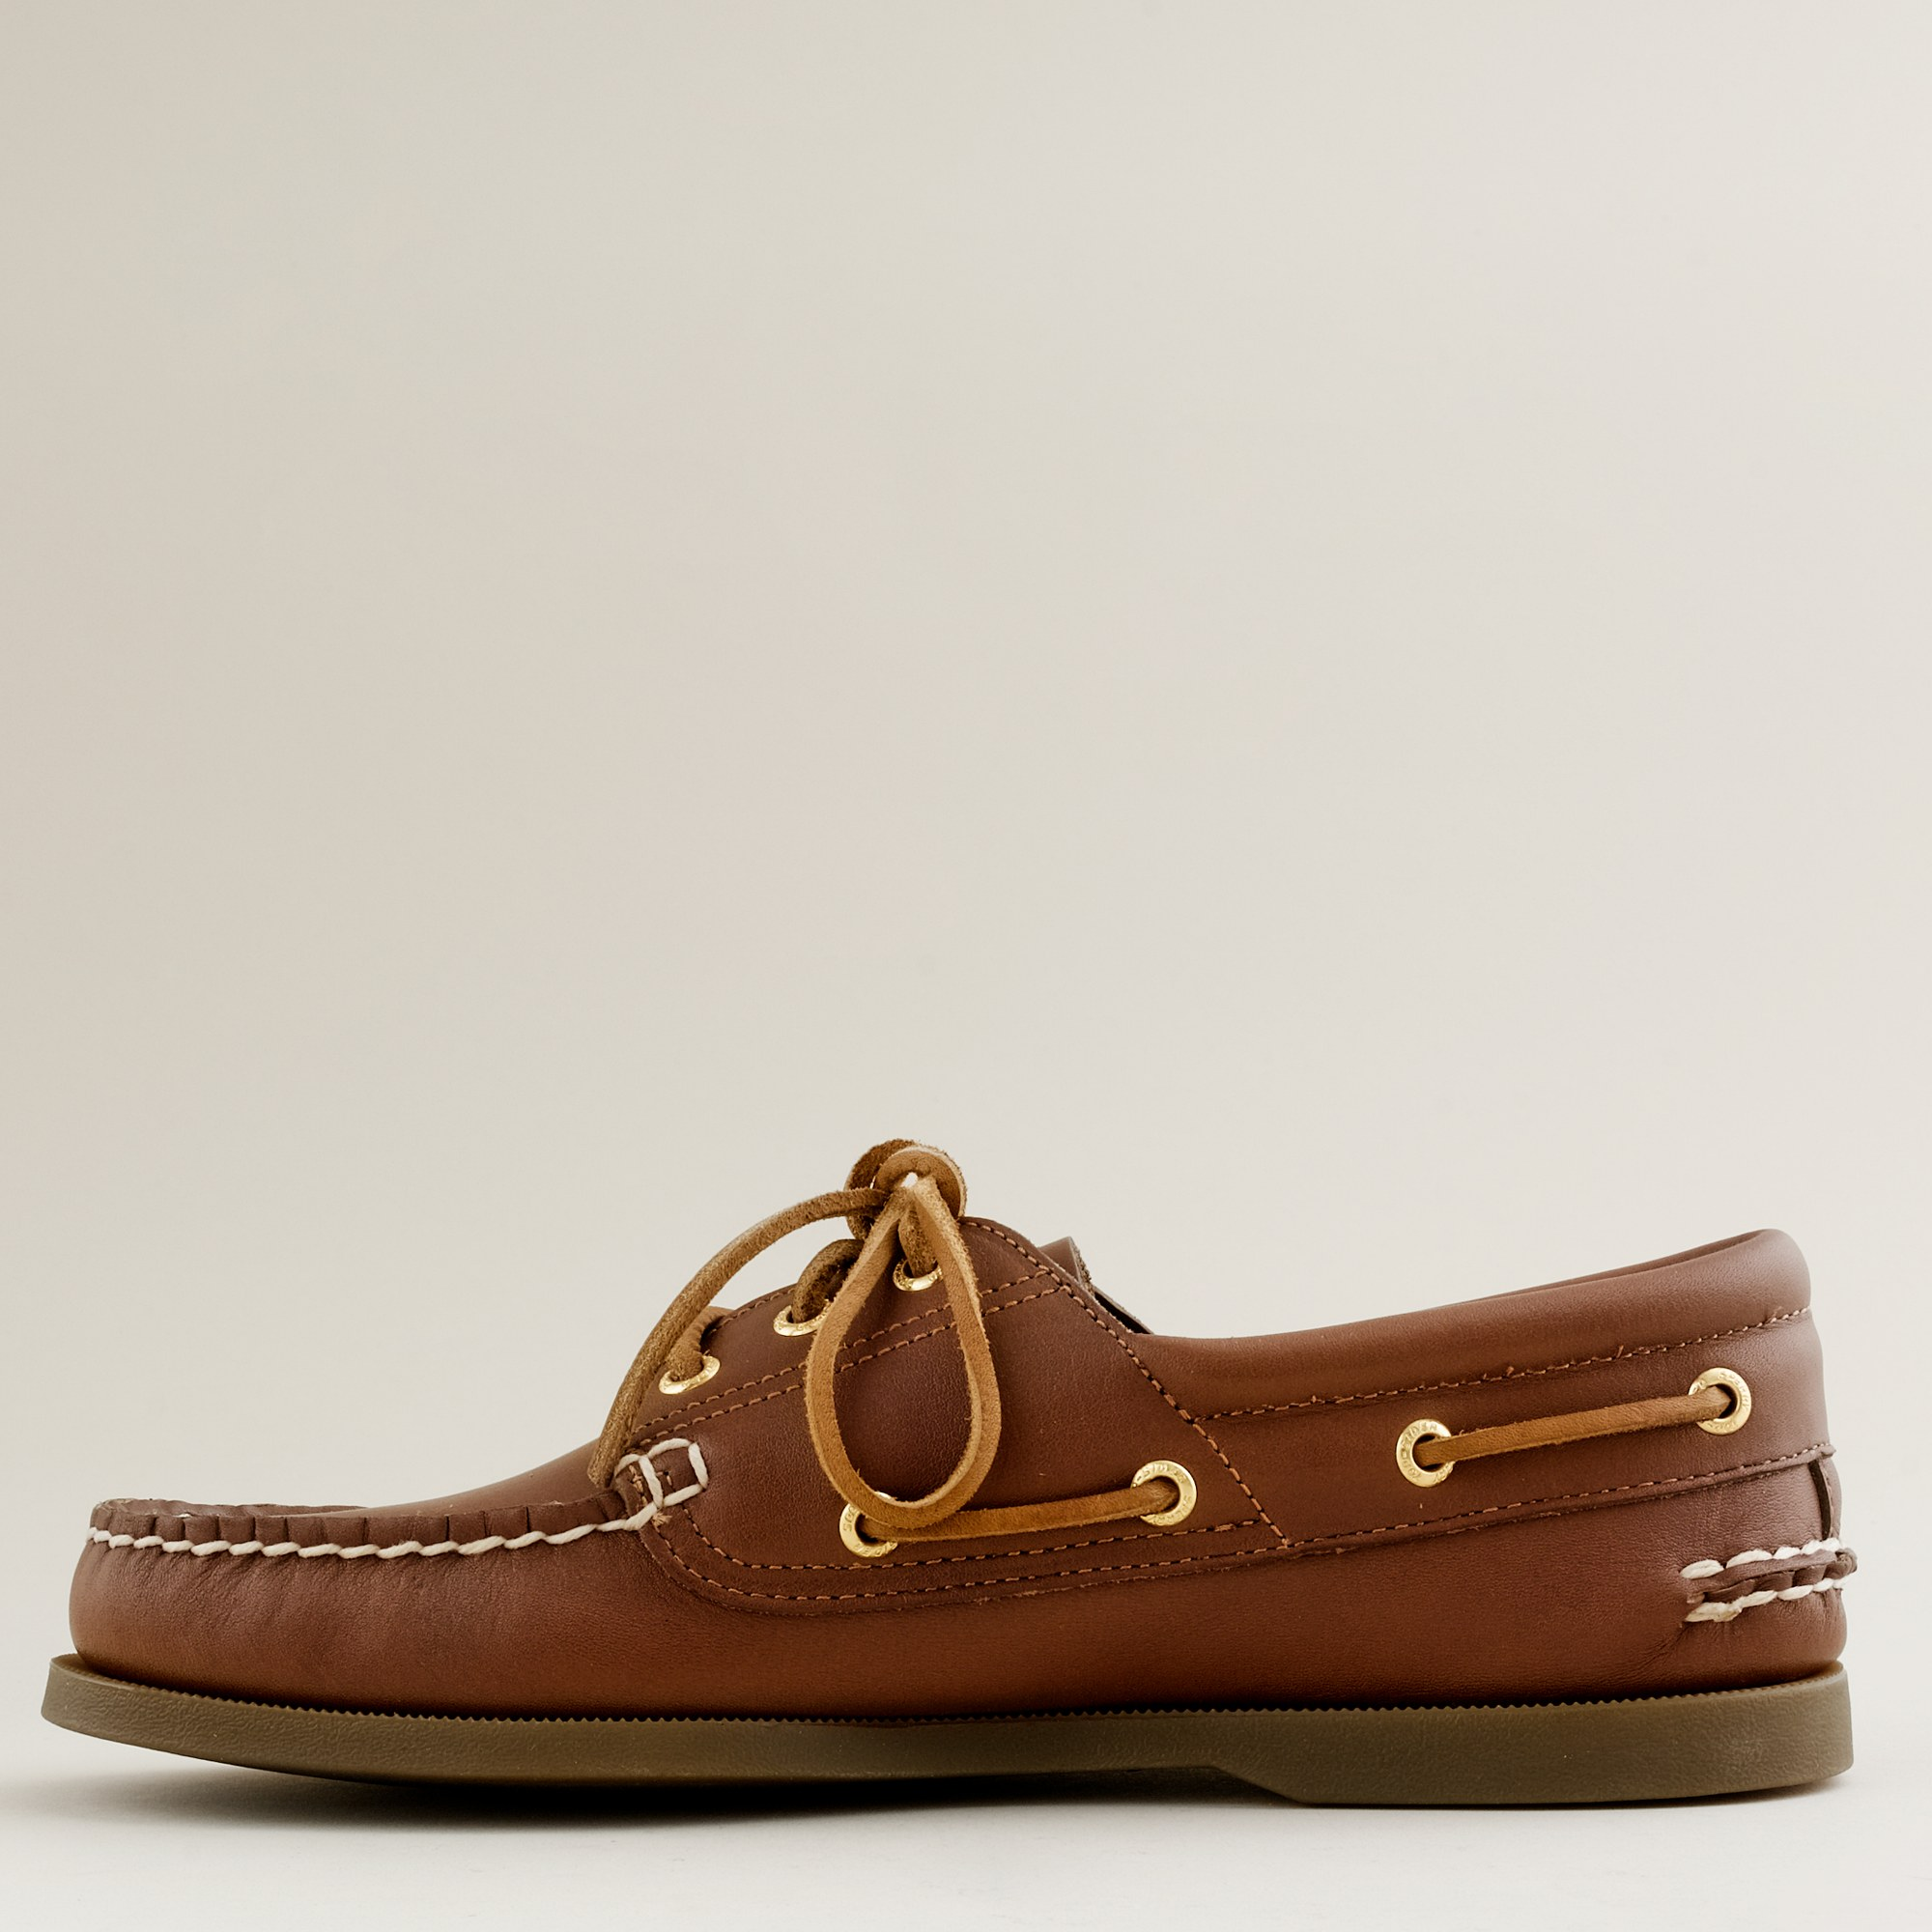 Sperry® for J.Crew Authentic Original 2-eye boat shoes in leather cheap sale browse buy cheap store outlet cheap quality pXMfh